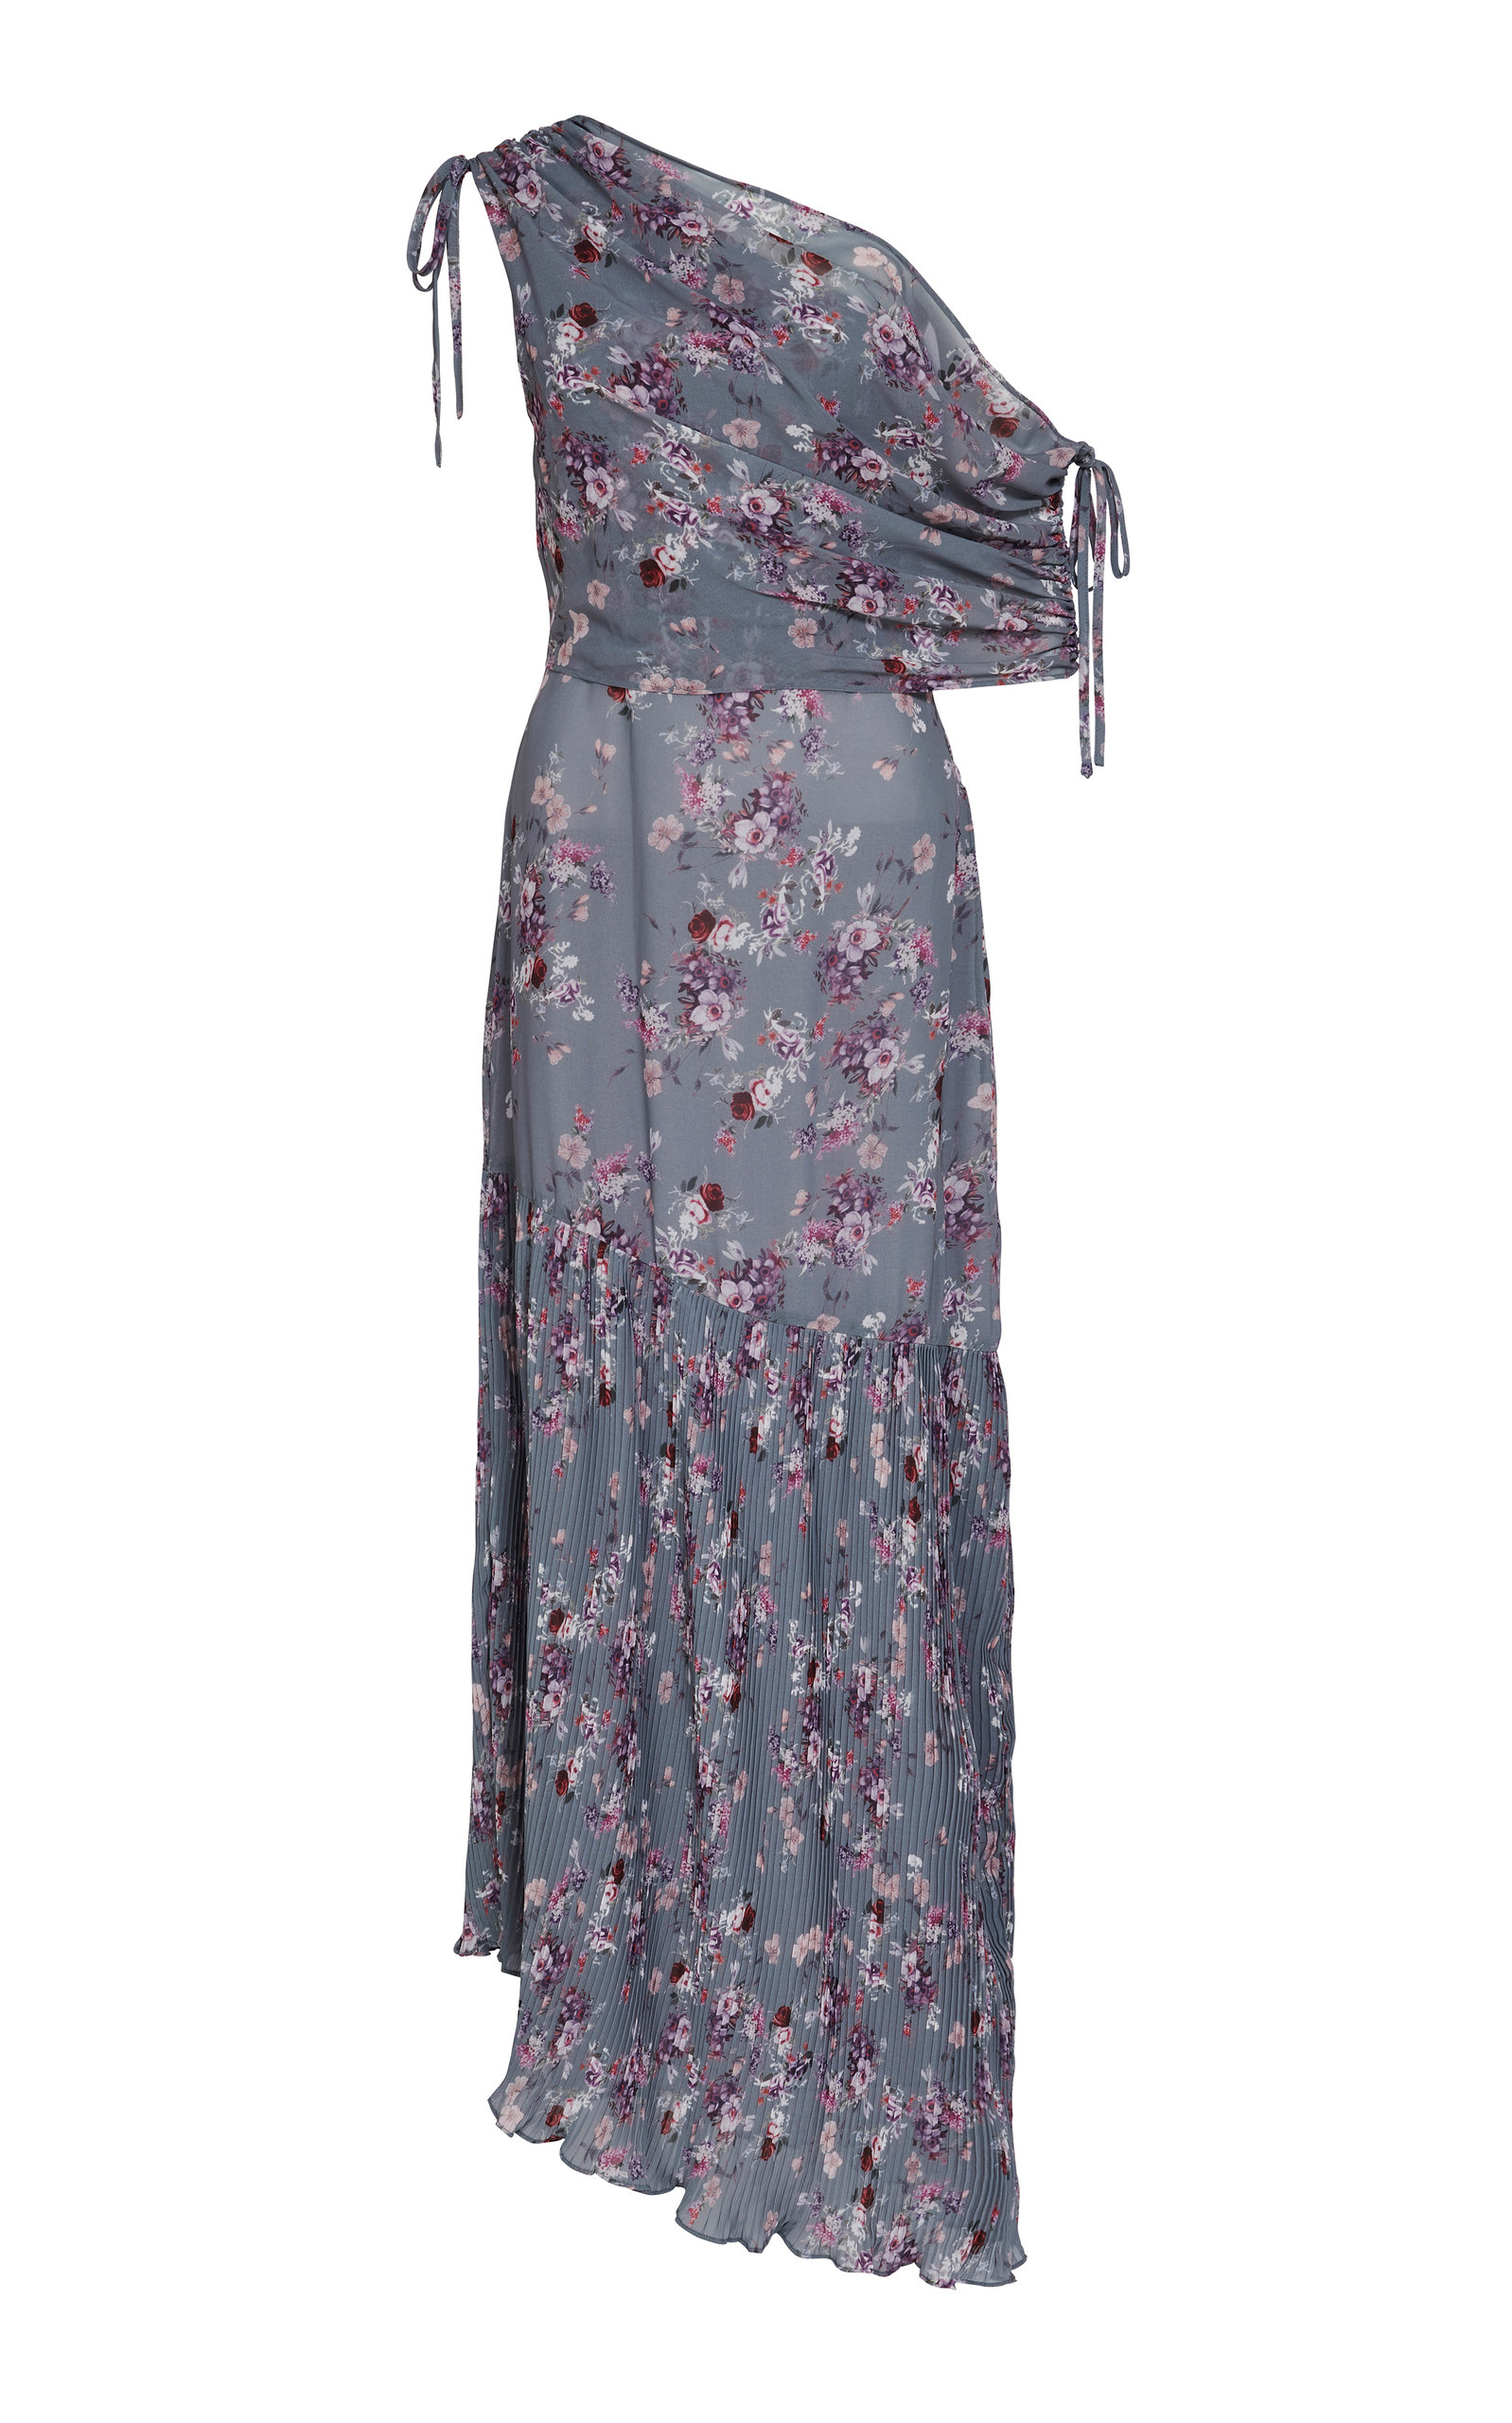 WE ARE KINDRED Antoinette Pleated Asymmetric Dress in Floral